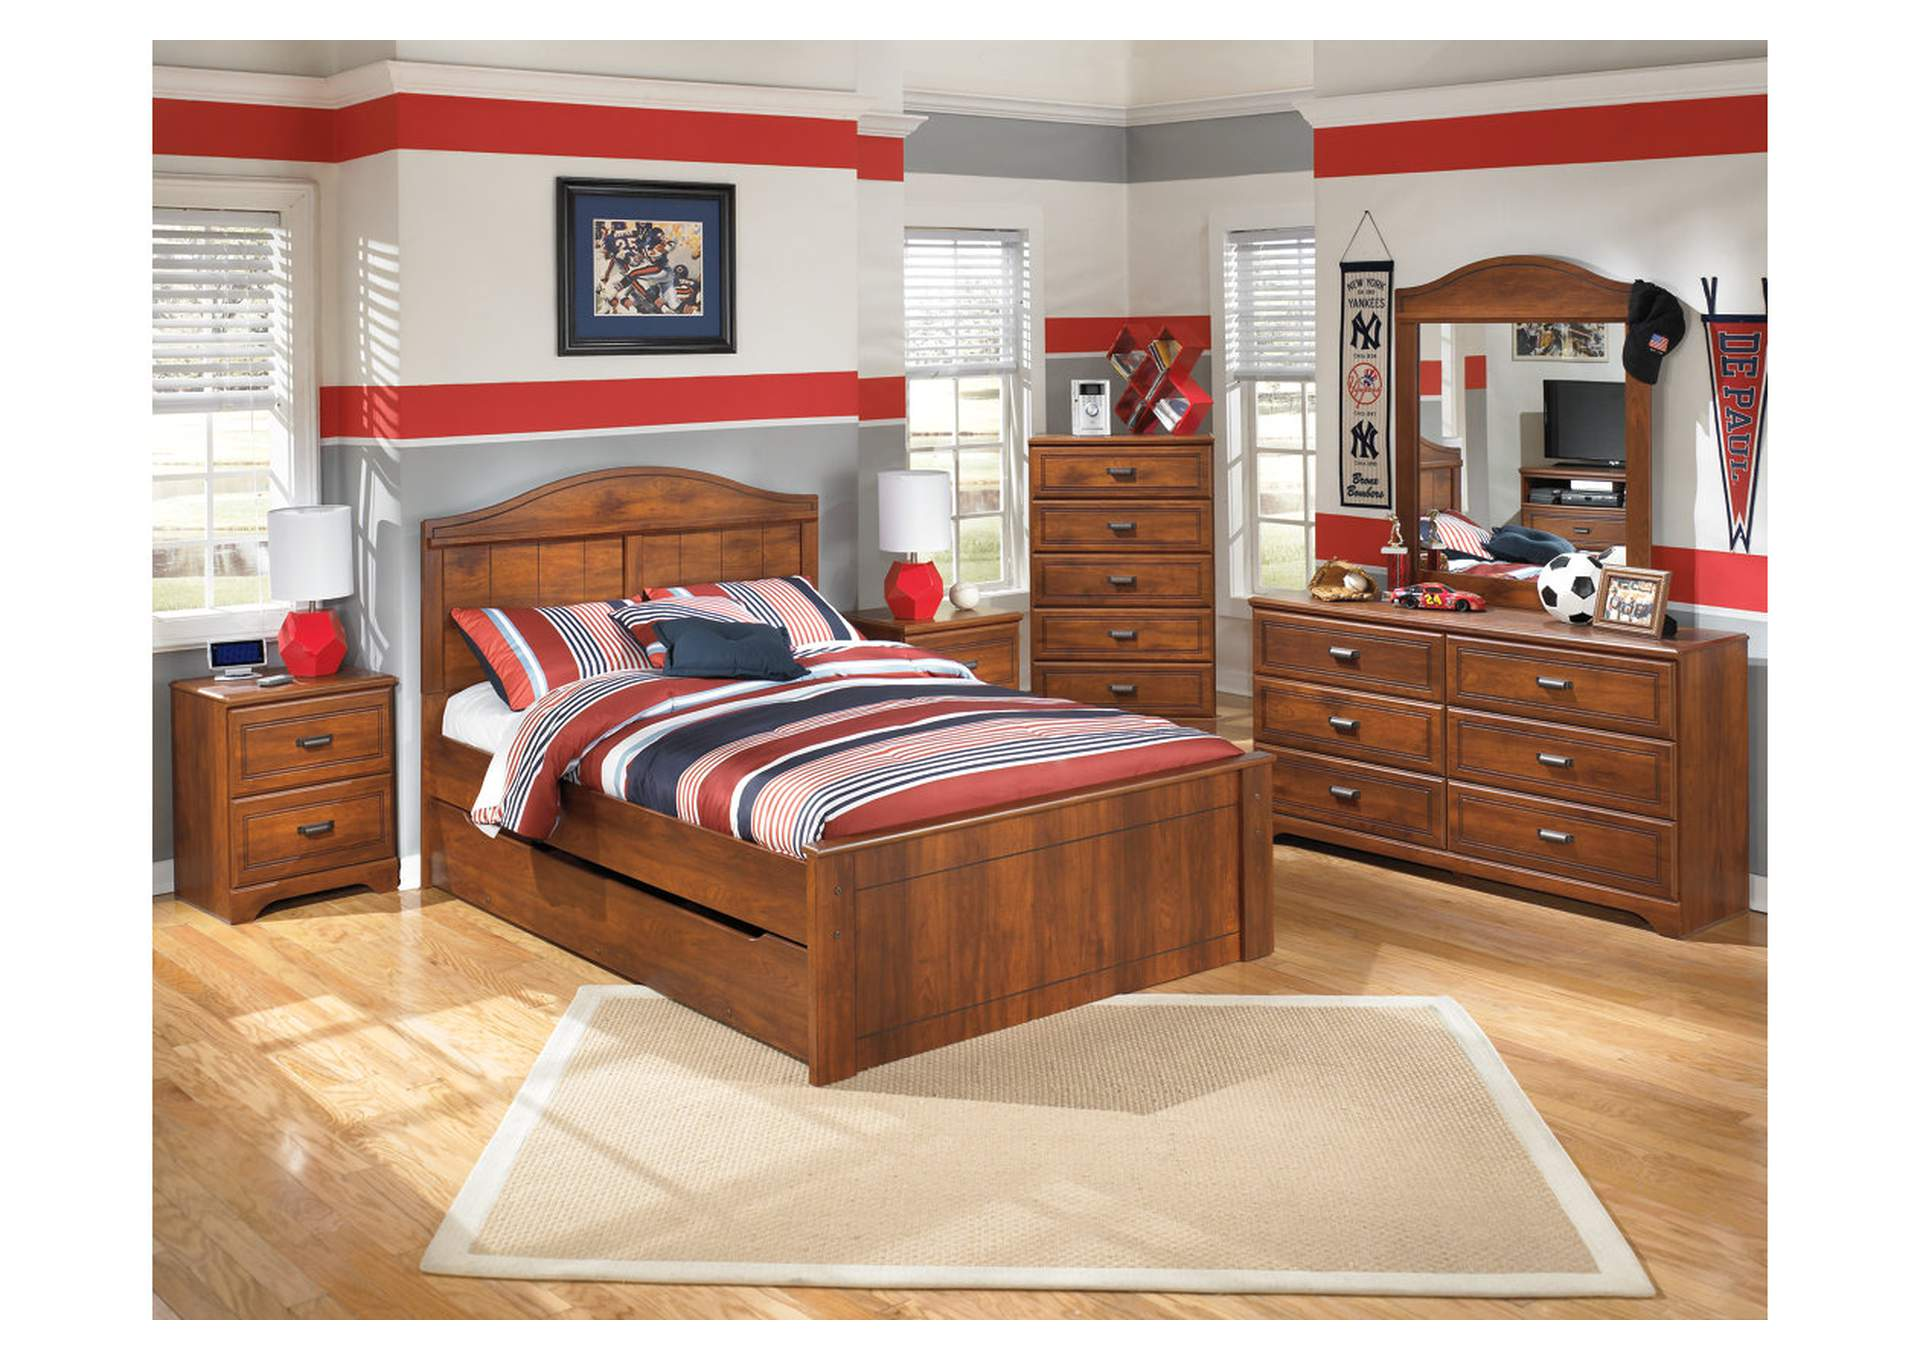 Barchan Full Panel Bed w/ Trundle, Dresser & Mirror,Signature Design By Ashley